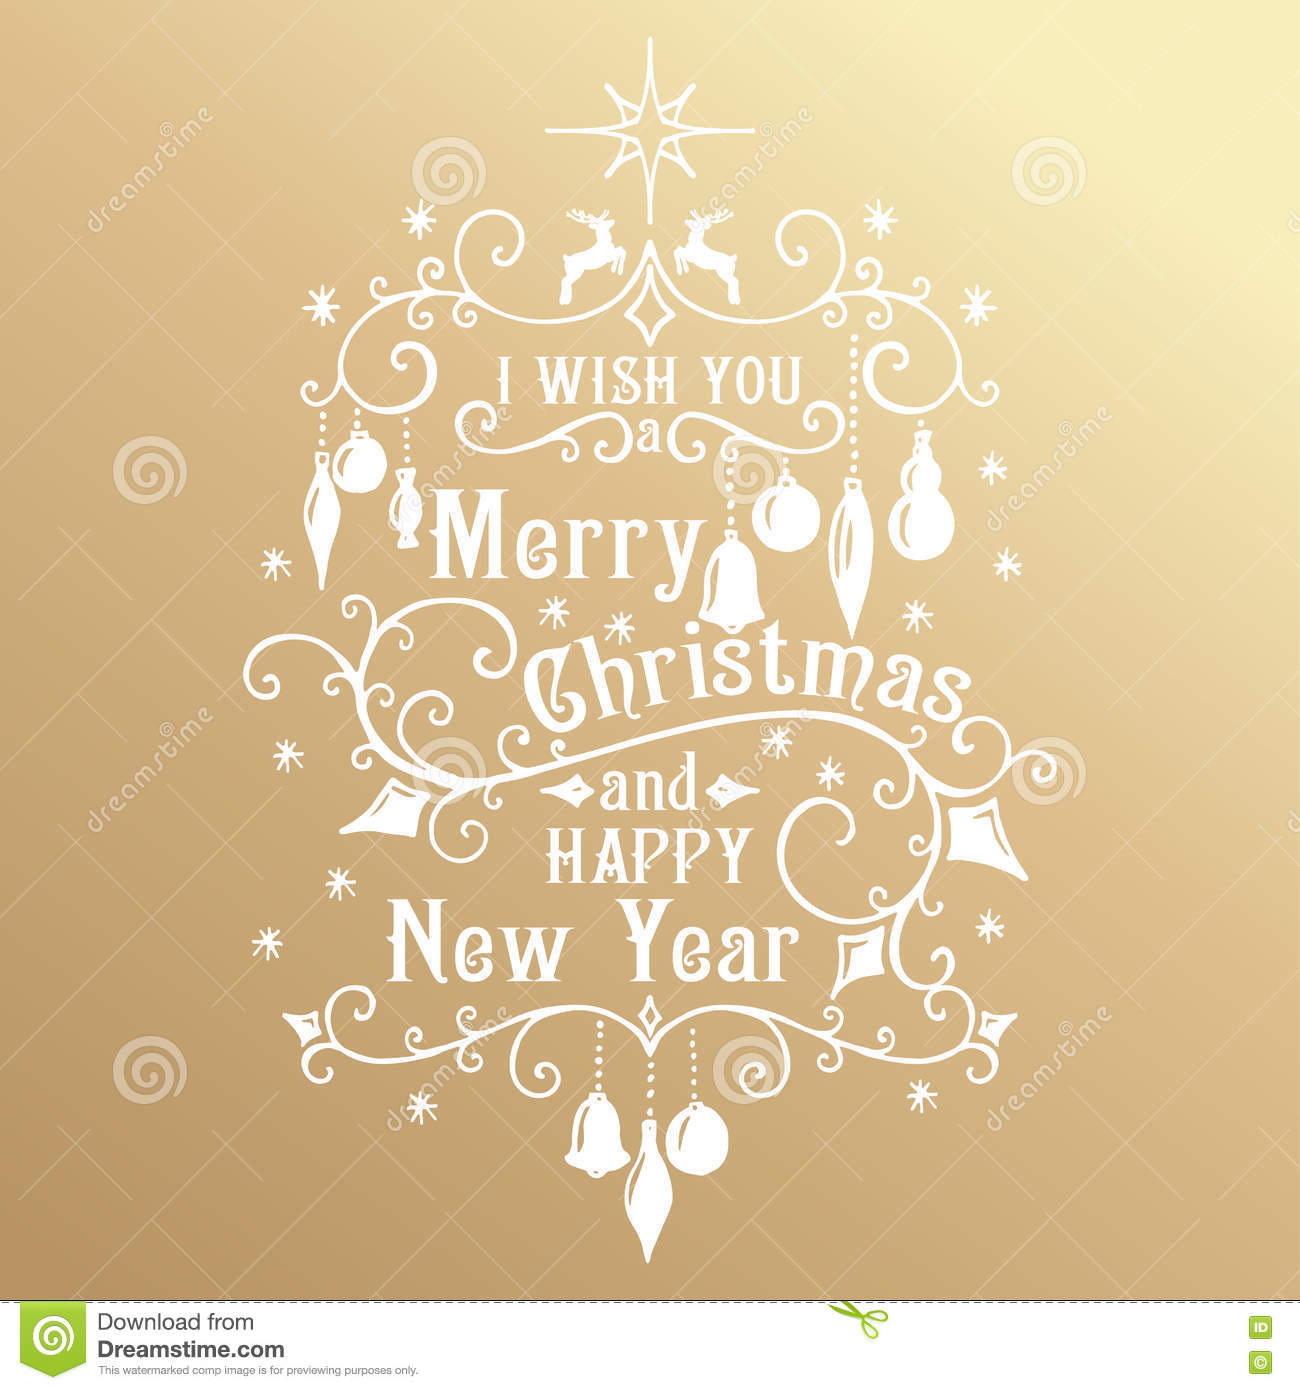 Merry Christmas And Happy New Year Golden Congratulations Card